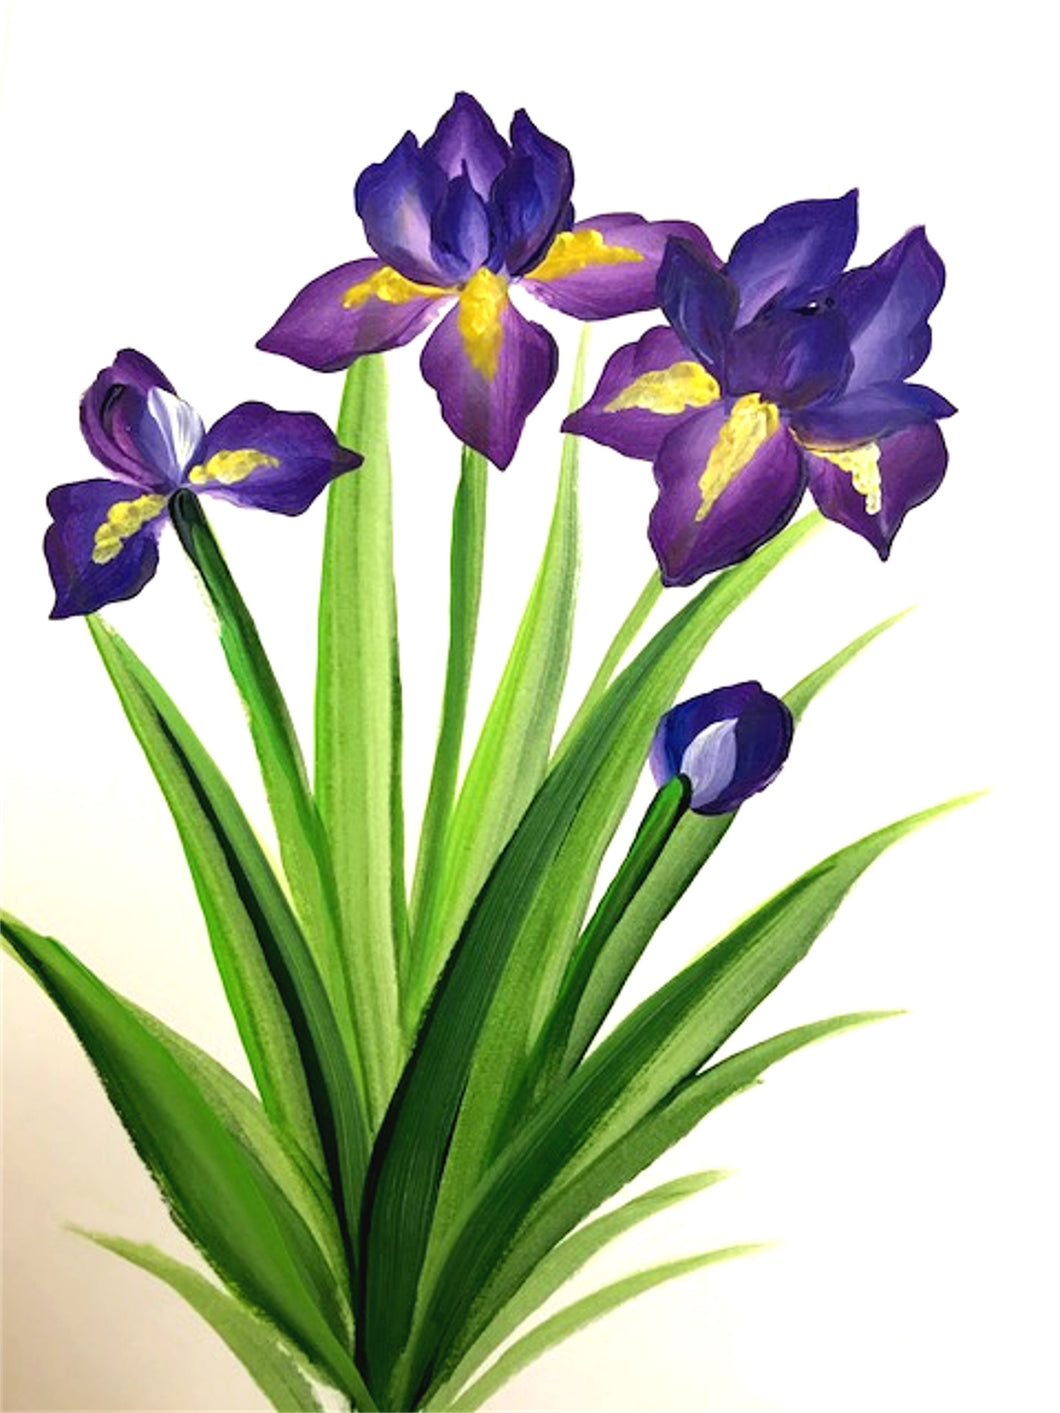 Irises - Course Video